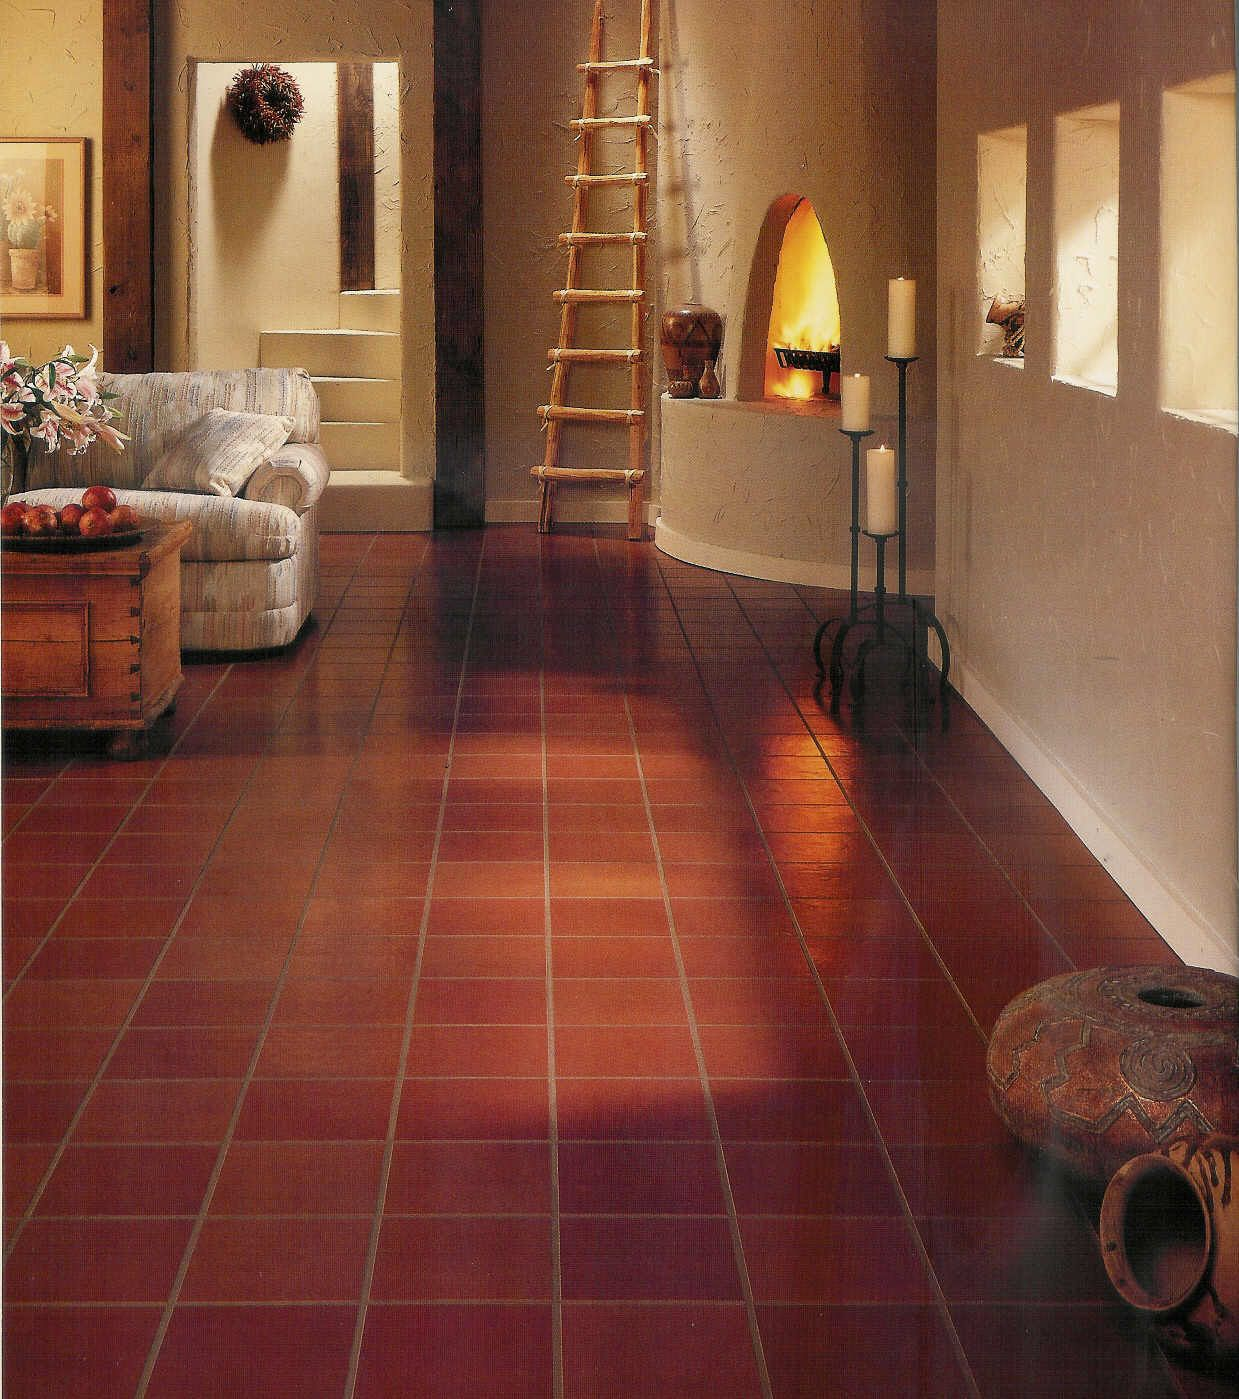 Vinyl Resillient Flooring Have Softness And Flexibility Of Vinyl Floor Also Reduces The Possibility Of Breakage When Plates Tile Floor Flooring Red Tile Floor